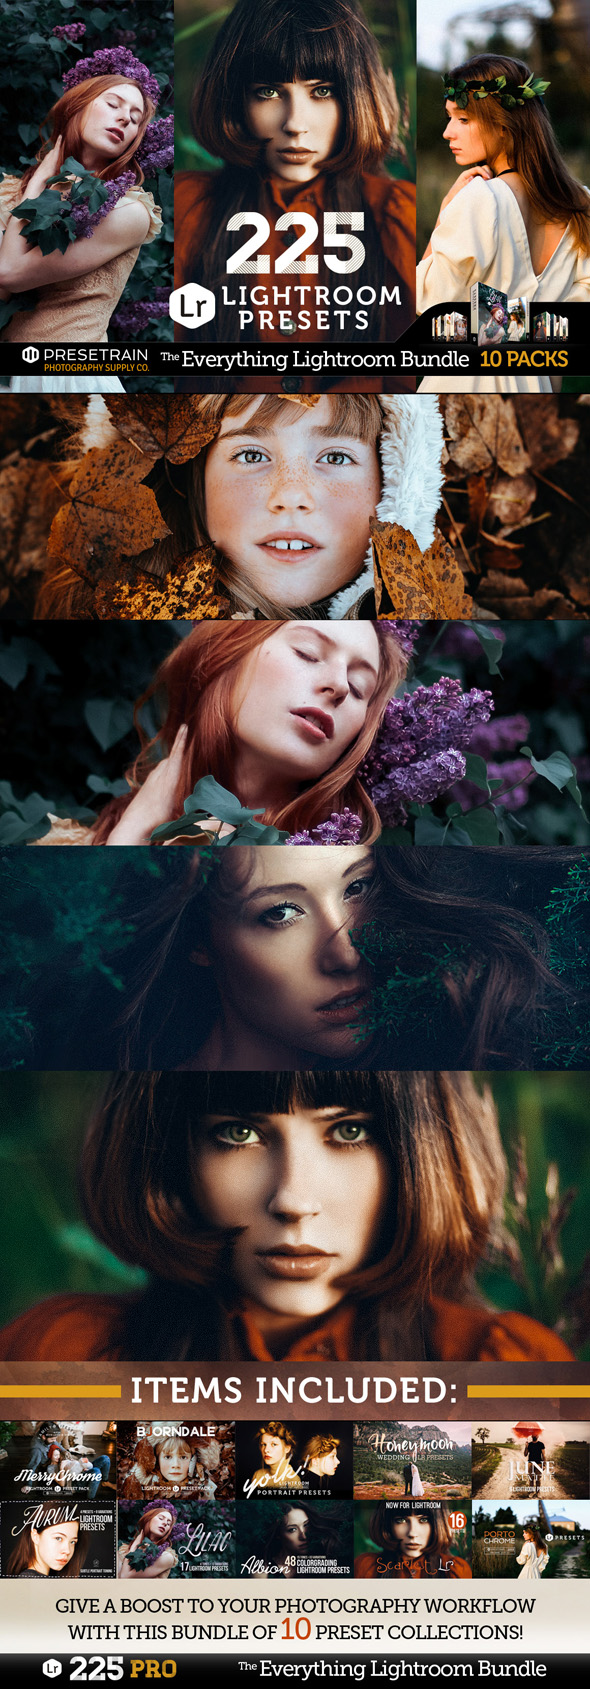 225 Pro Lightroom Presets Bundle - Lightroom Presets Add-ons